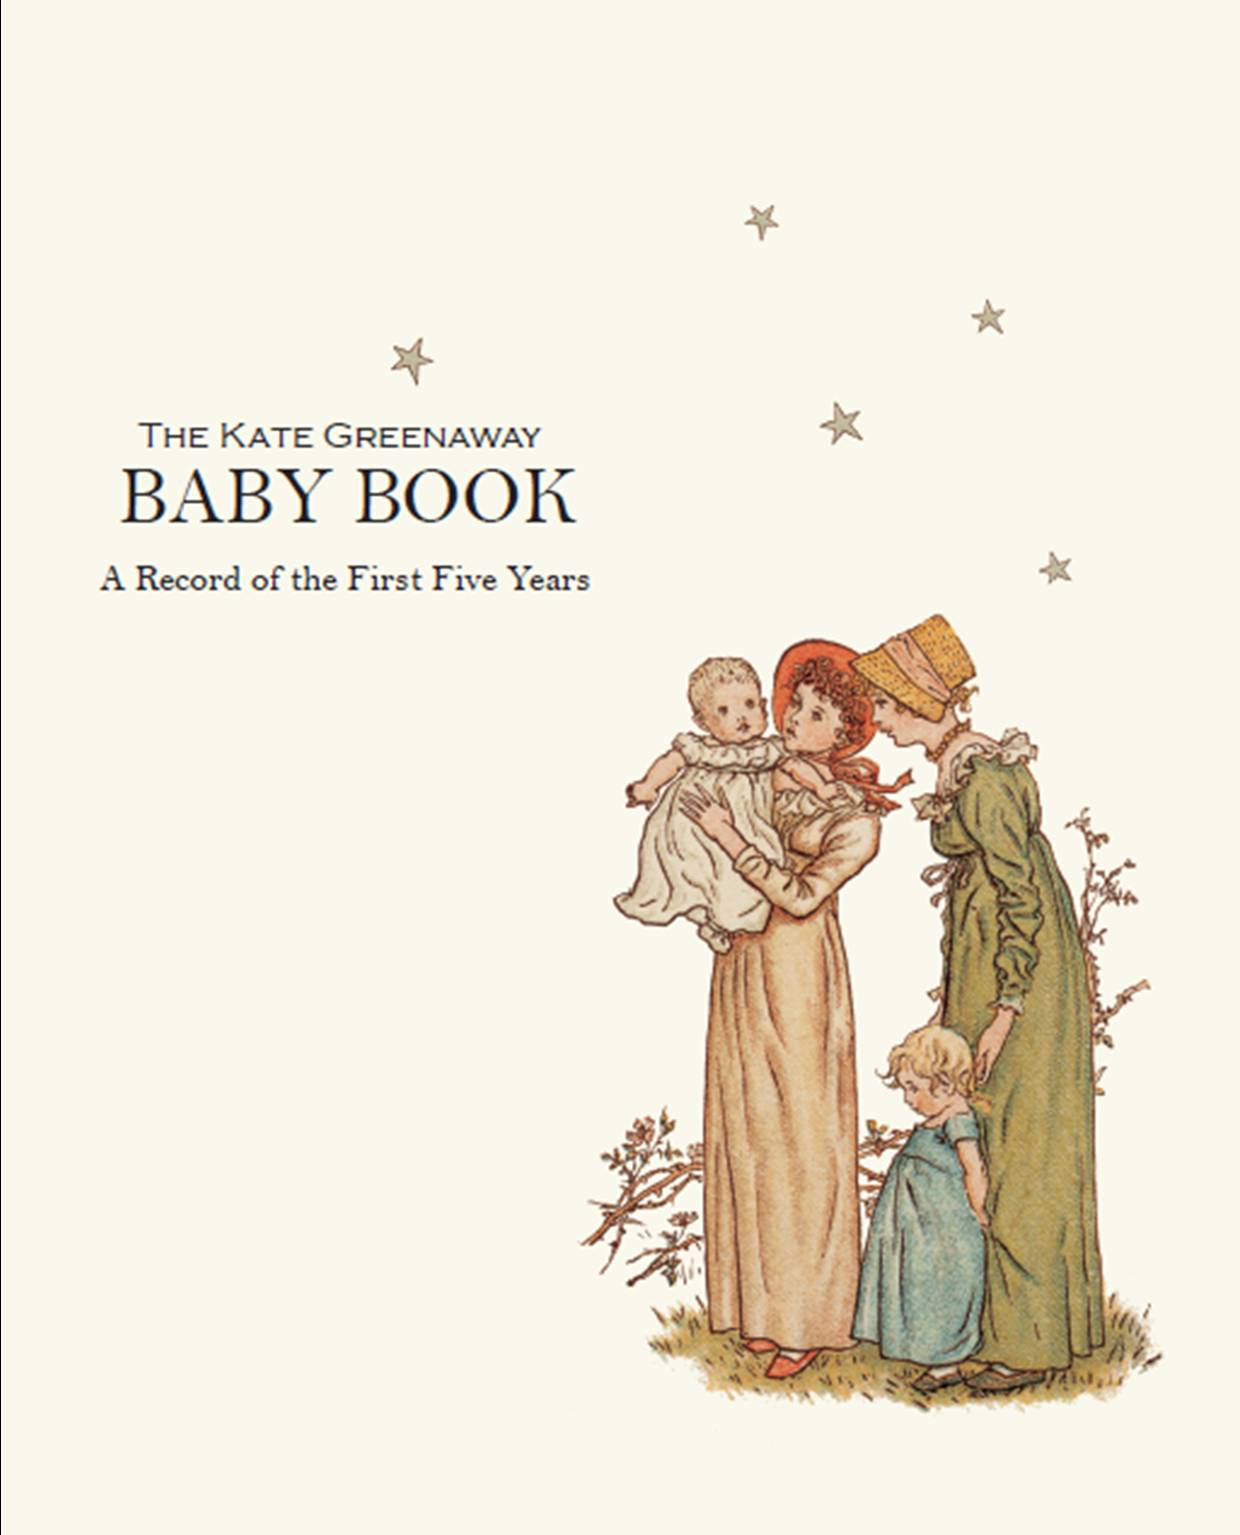 Praise for Baby Book